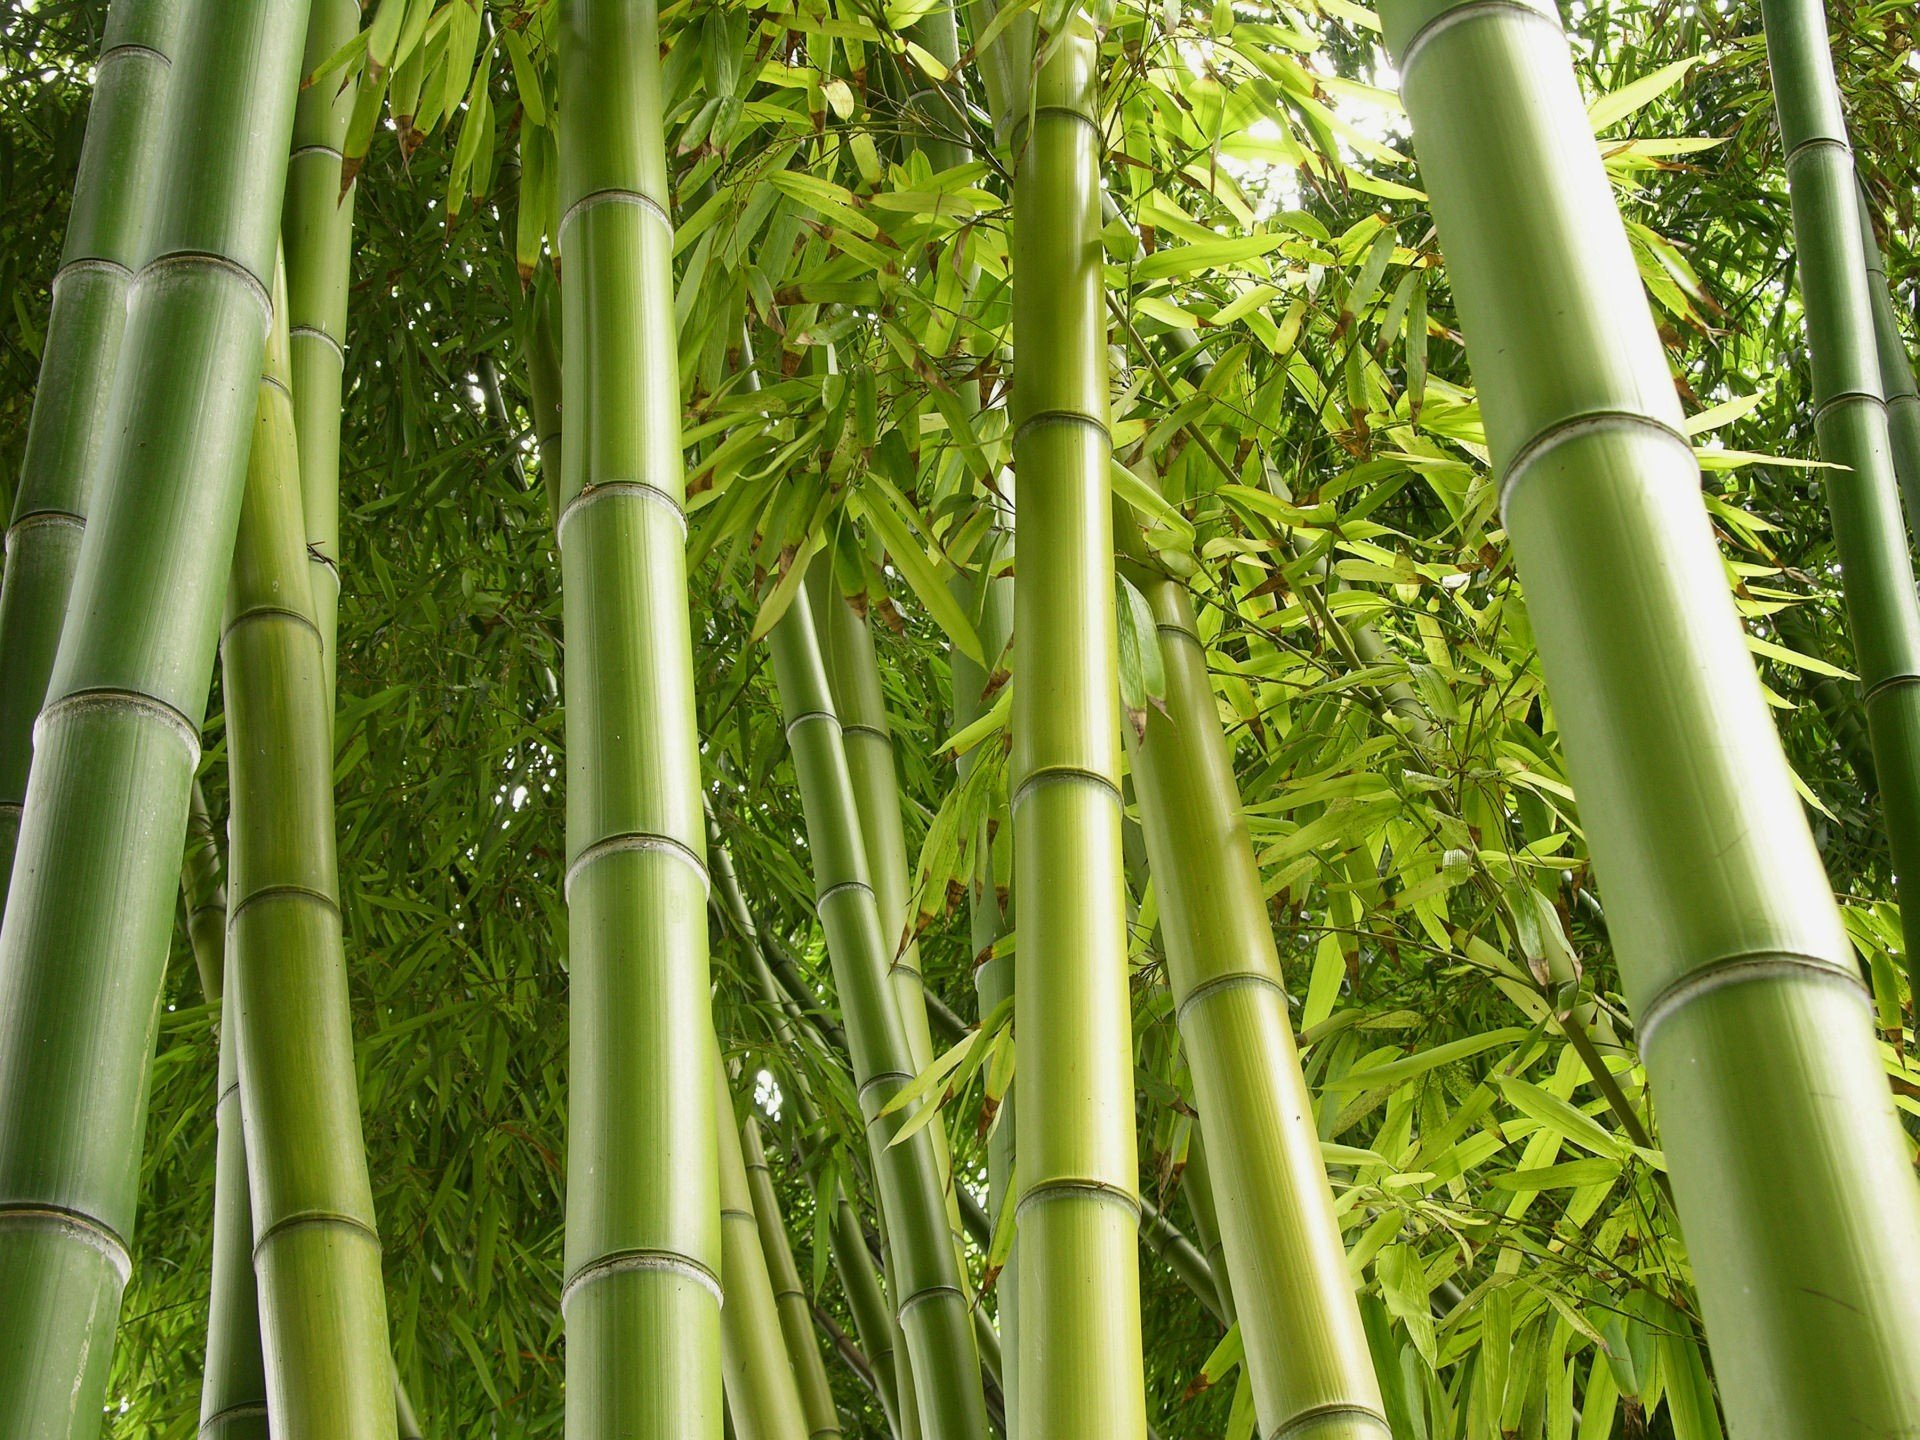 download hd 1920x1440 bamboo desktop wallpaper id:246795 for free